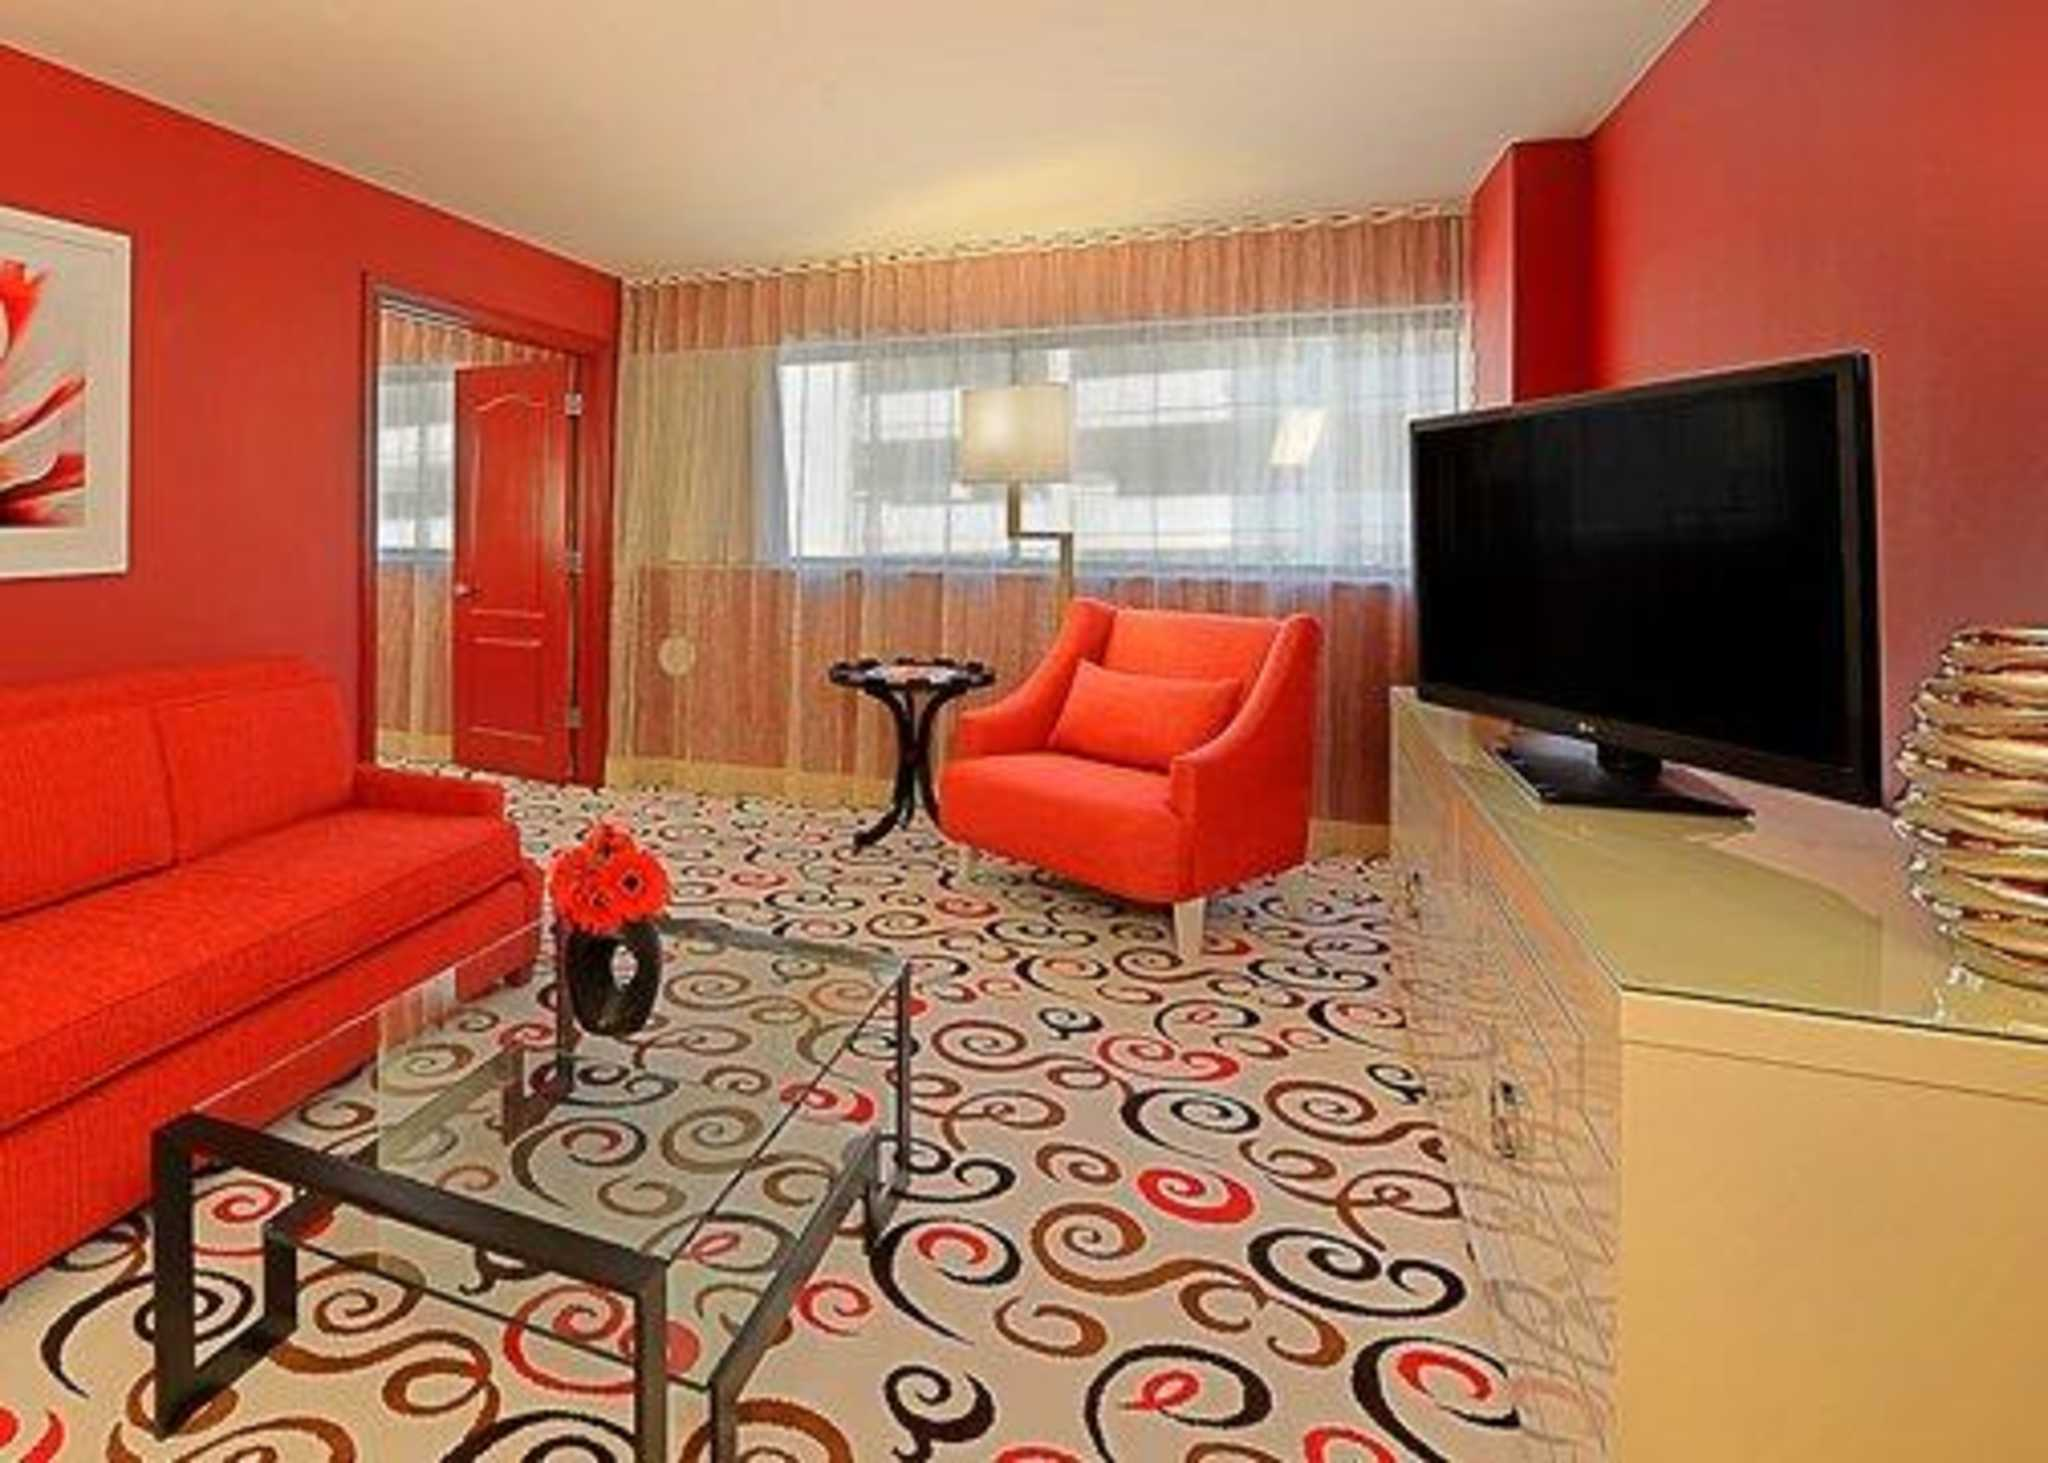 Downtown Grand Hotel & Casino, Ascend Hotel Collection - Closed in Las Vegas, NV, photo #15